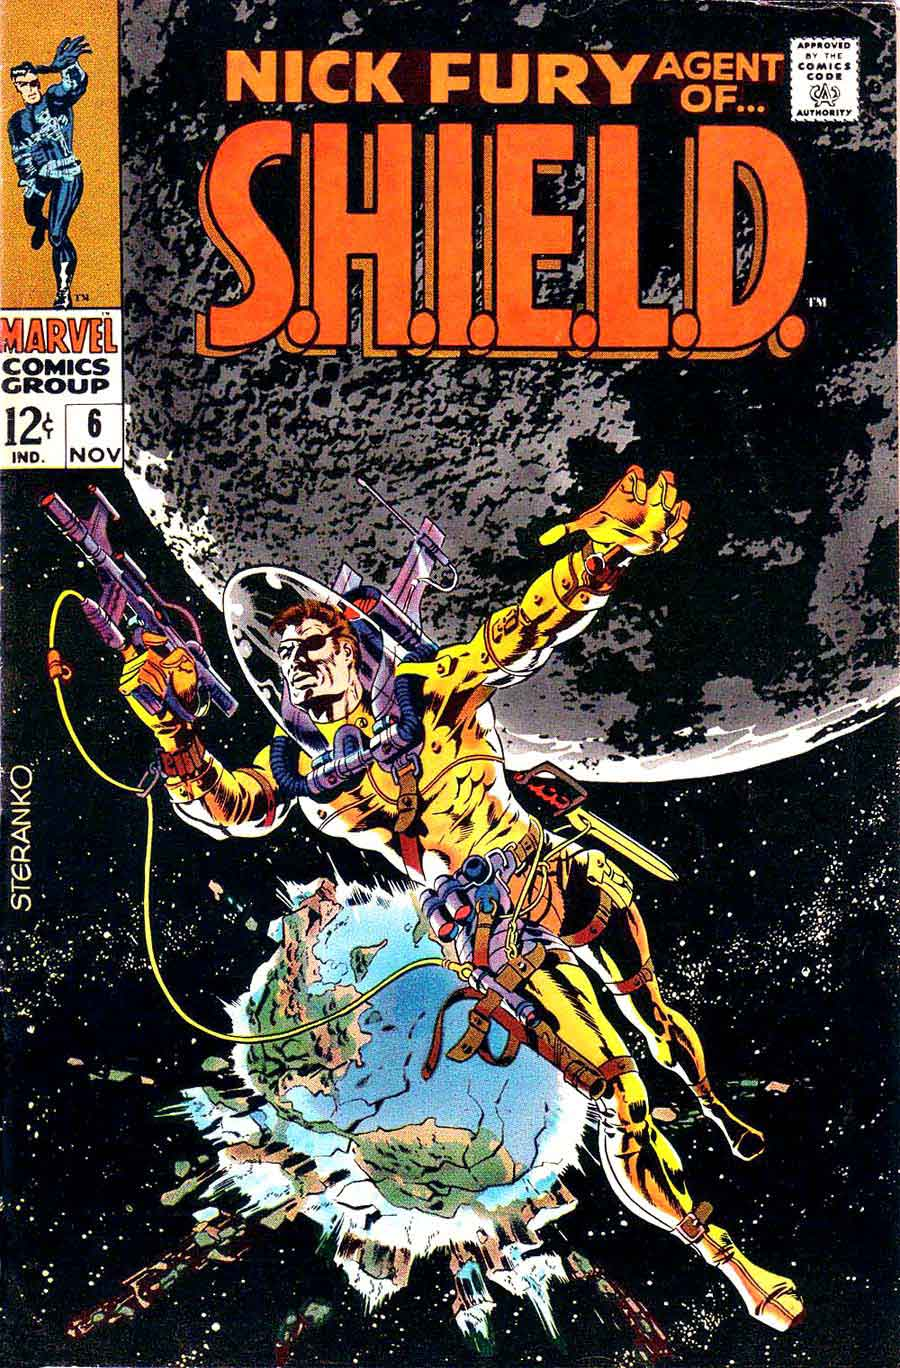 Nick Fury Agent of Shield v1 #6 1960s marvel comic book cover art by Jim Steranko